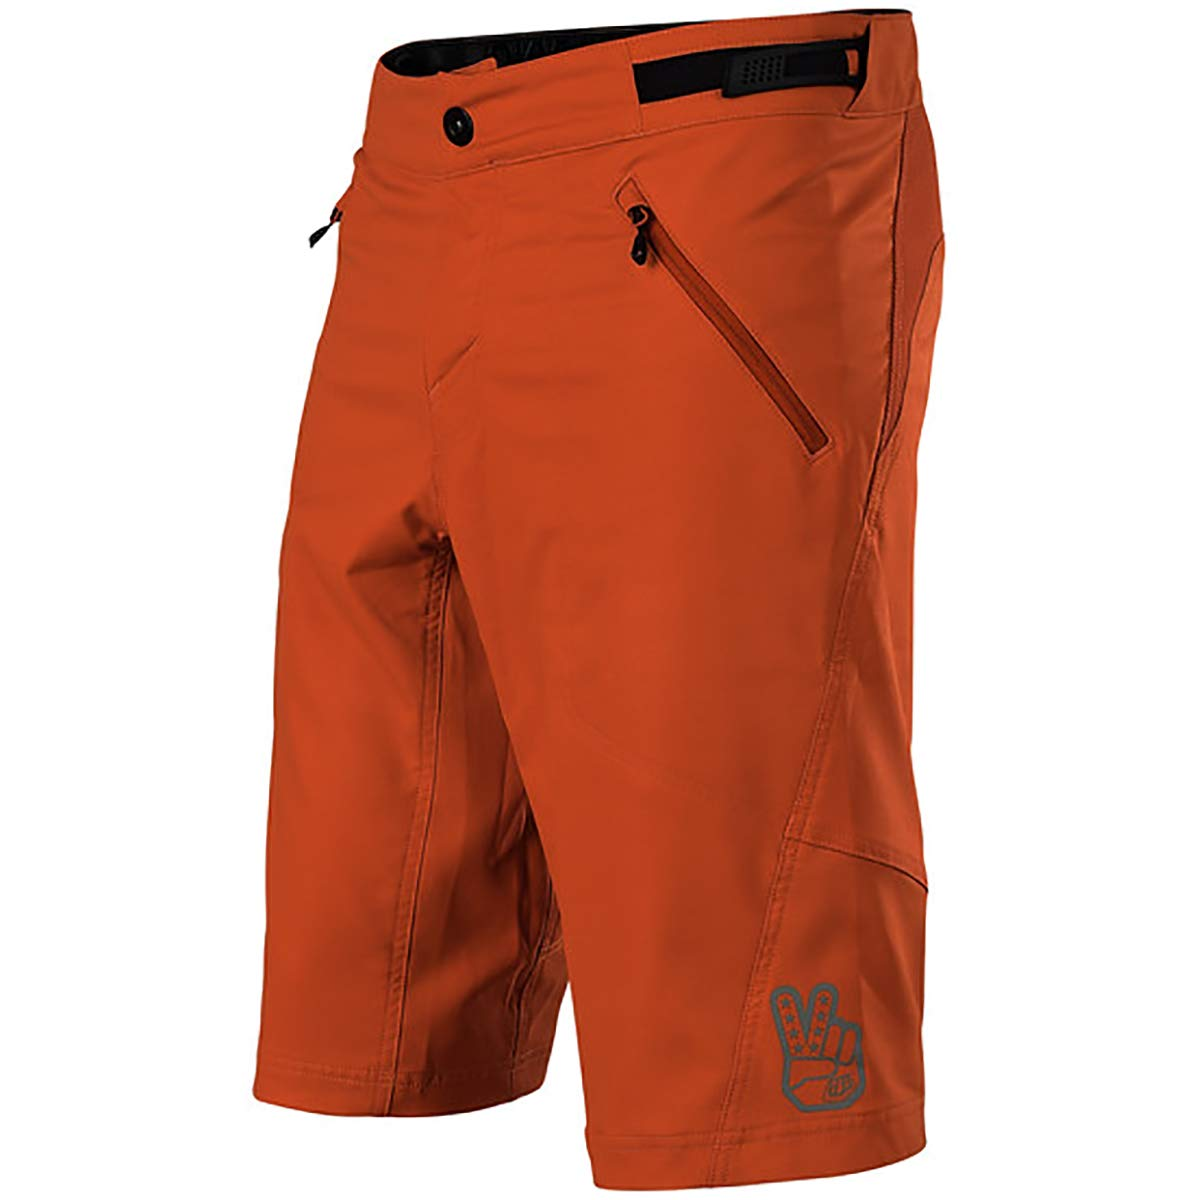 Troy Lee Designs Skyline Short Shell - Men's Solid Clay, 32 by Troy Lee Designs